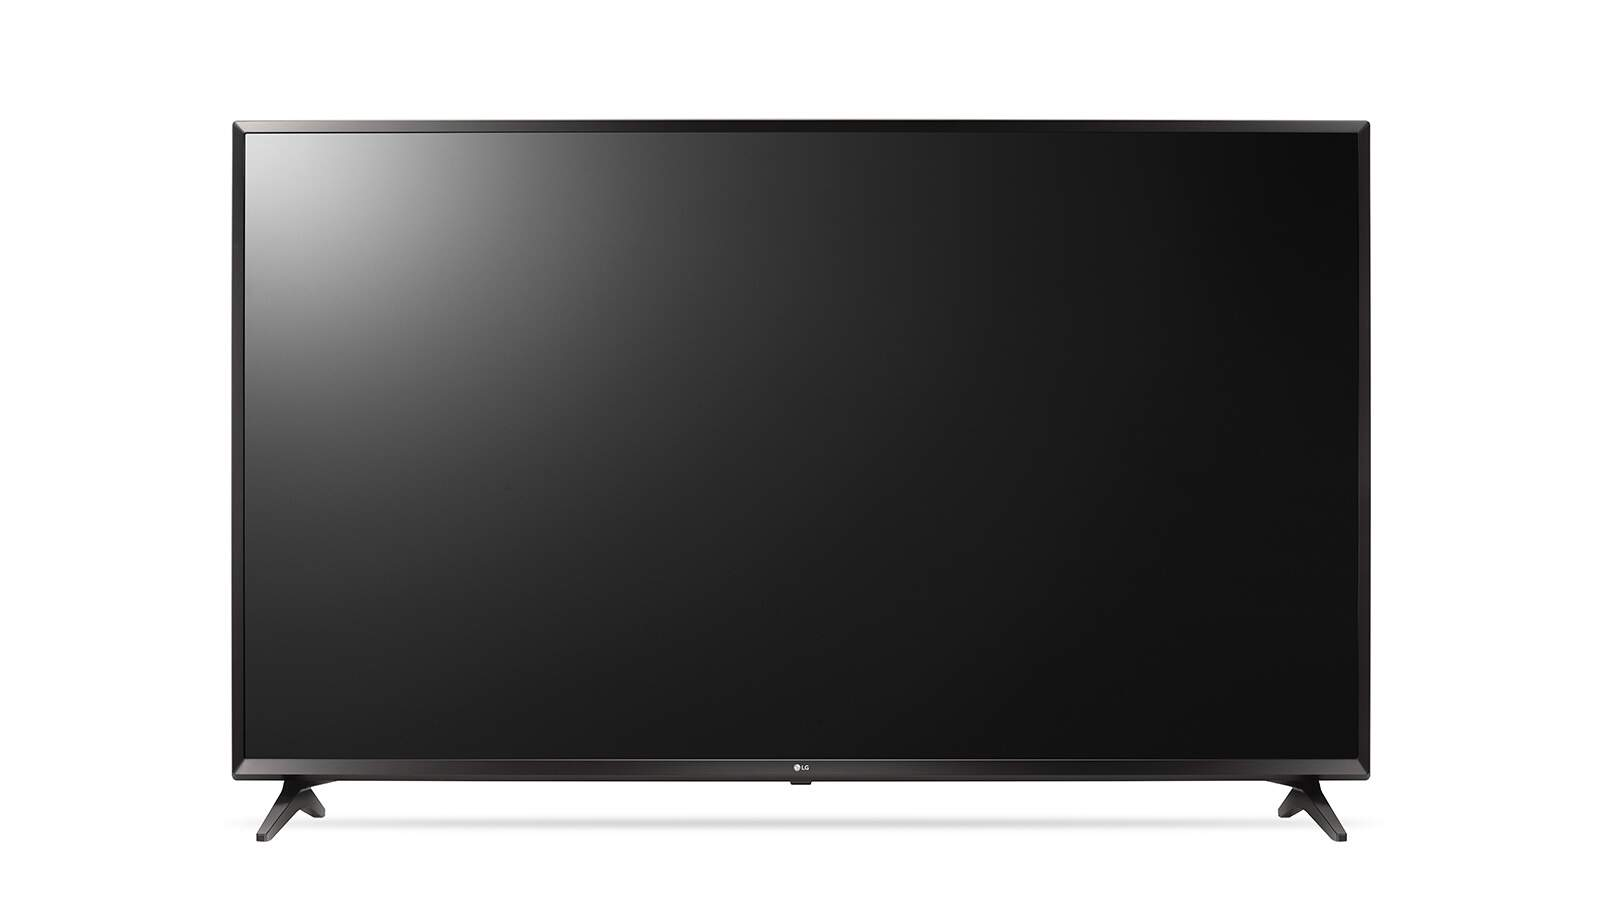 Smart TV LED 43 Ultra HD 4K LG 43UJ6300 com Sistema WebOS 3.5, Wi-Fi, Painel IPS, HDR